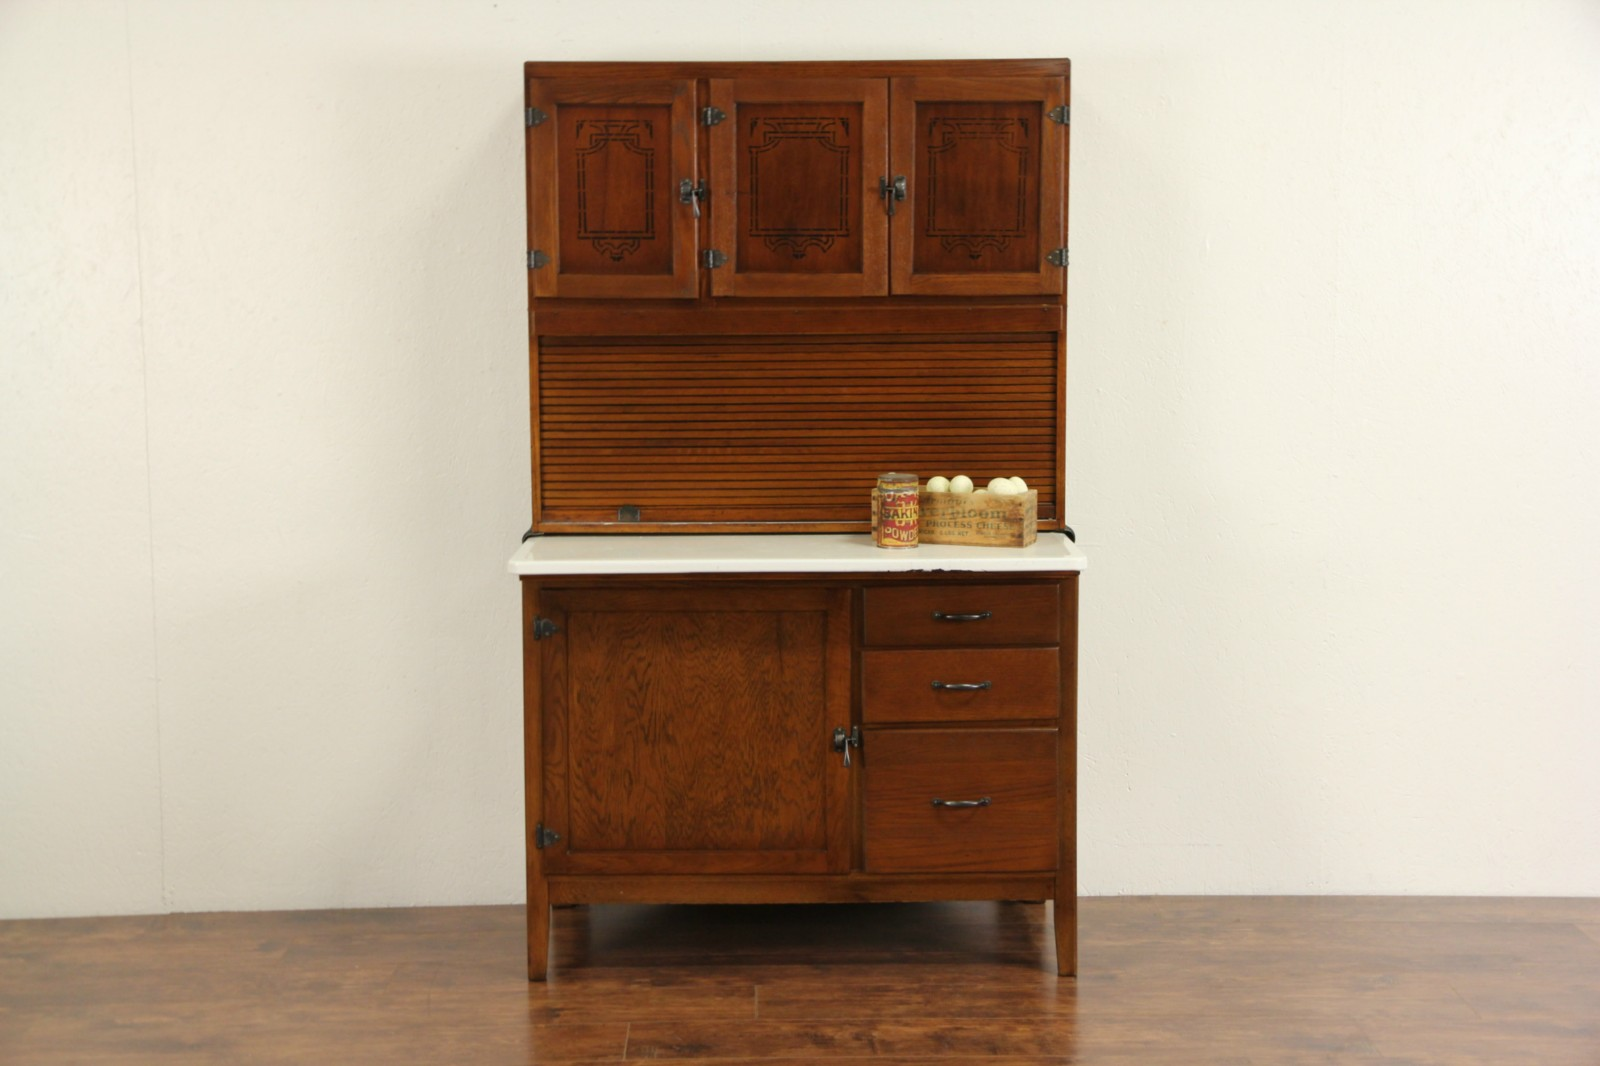 Genial Hoosier 1915 Antique Oak Roll Top Kitchen Cabinet, Porcelain Top, Flour  Sifter